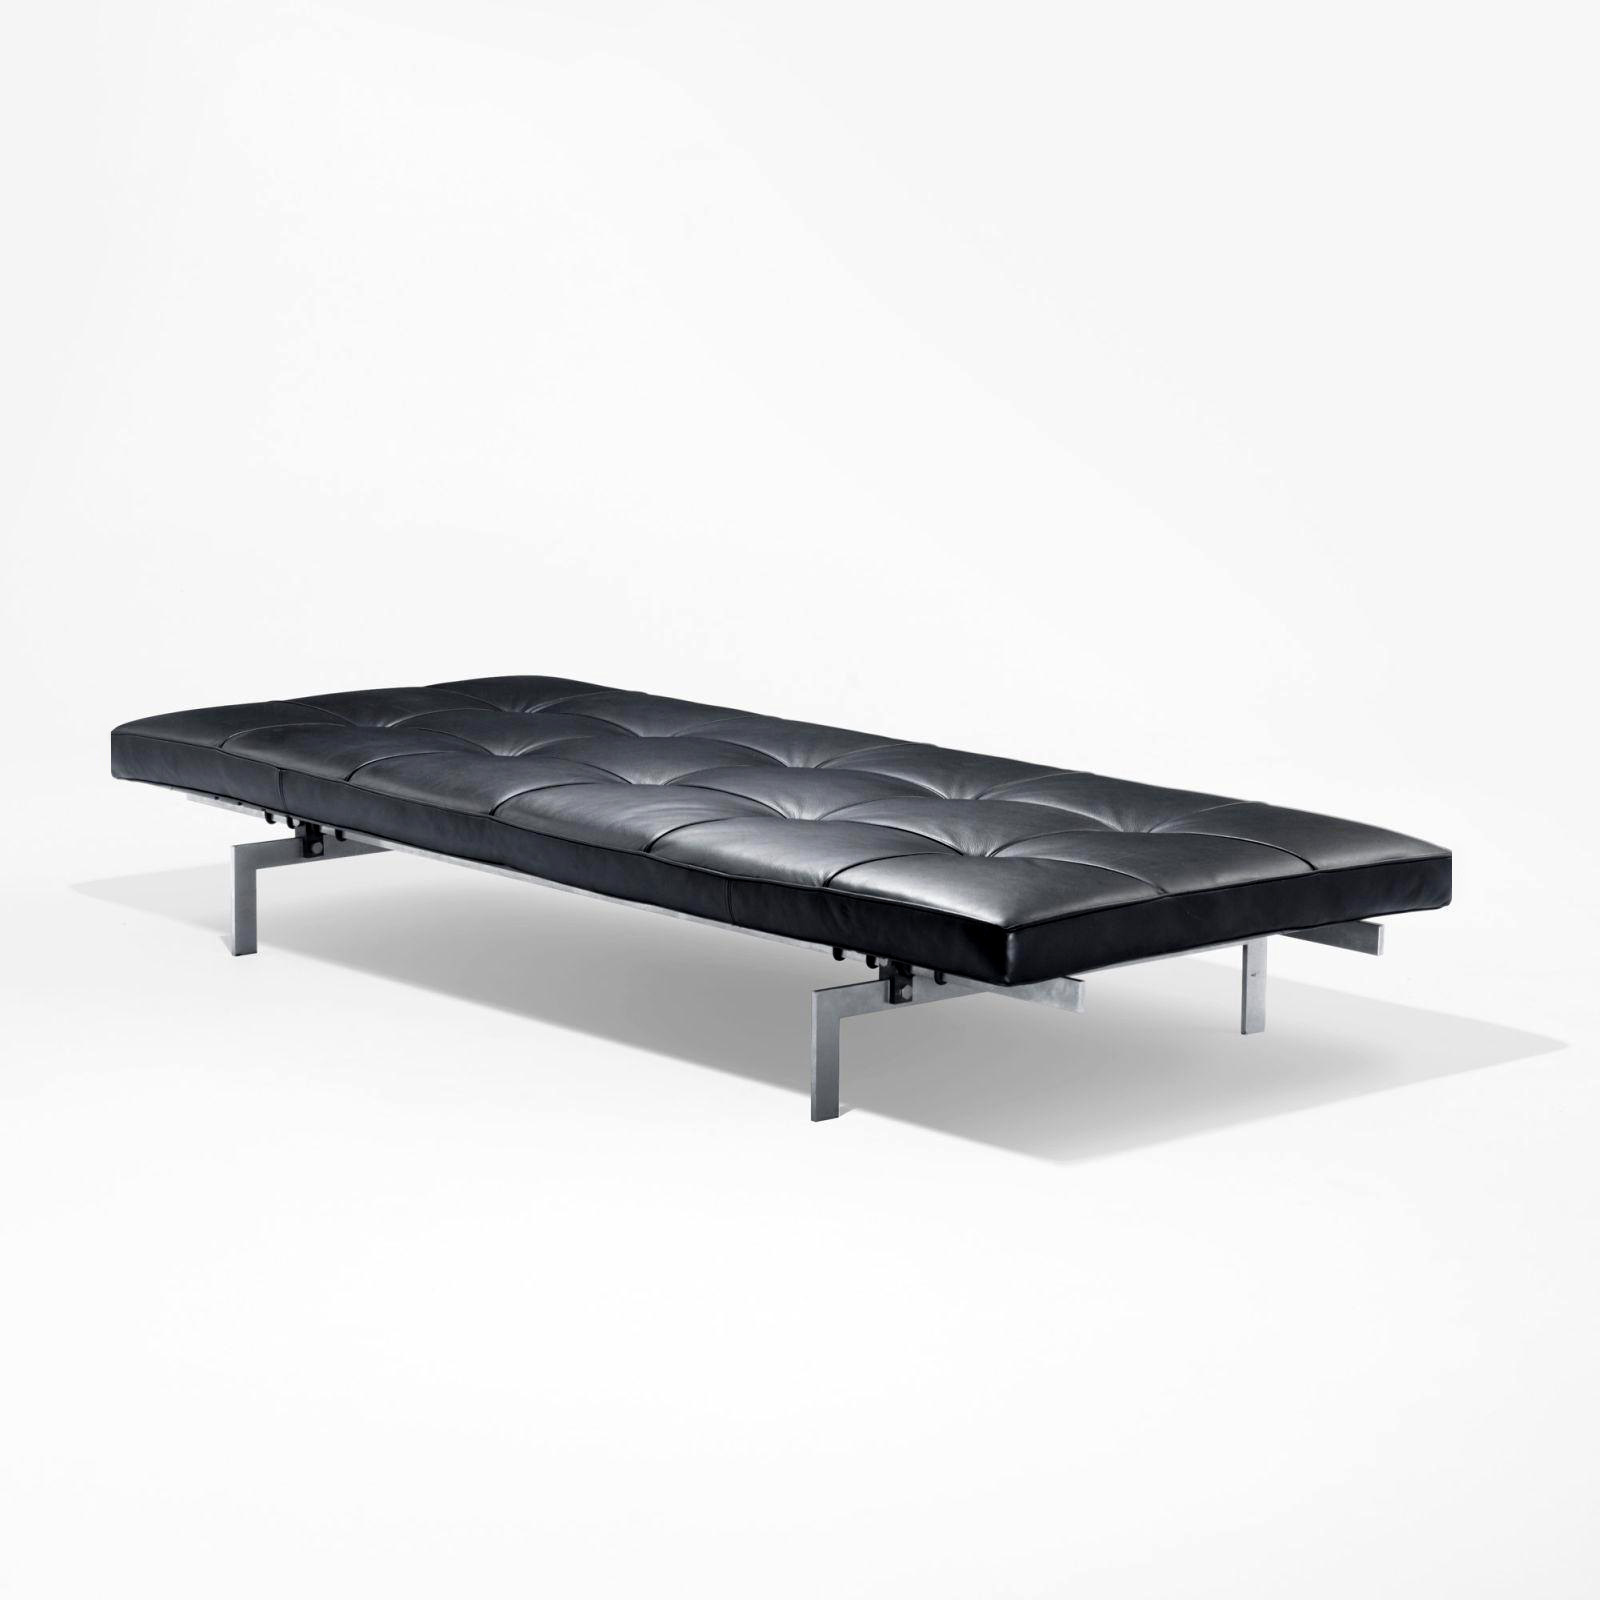 "Charming Leather Benches Modern Part - 13: Fritz Hansen Poul Kjaerholm PK80â""¢ Bench In Classic Black Leather By  Stardust Modern Designâ""¢"